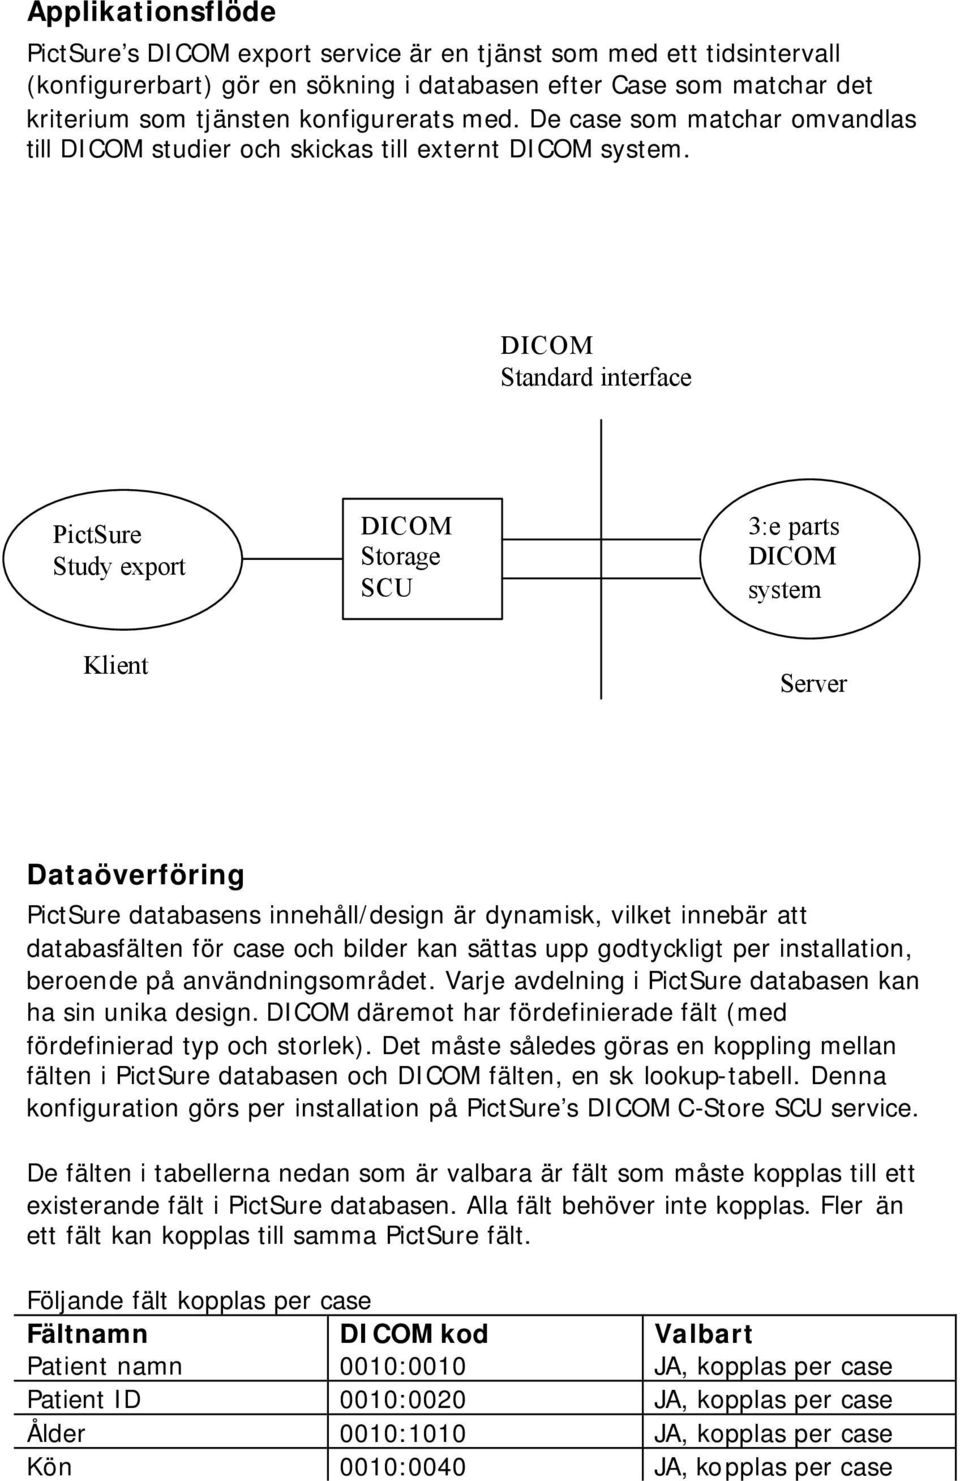 DICOM Standard interface PictSure Study export DICOM Storage SCU 3:e parts DICOM system Klient Server Dataöverföring PictSure databasens innehåll/design är dynamisk, vilket innebär att databasfälten